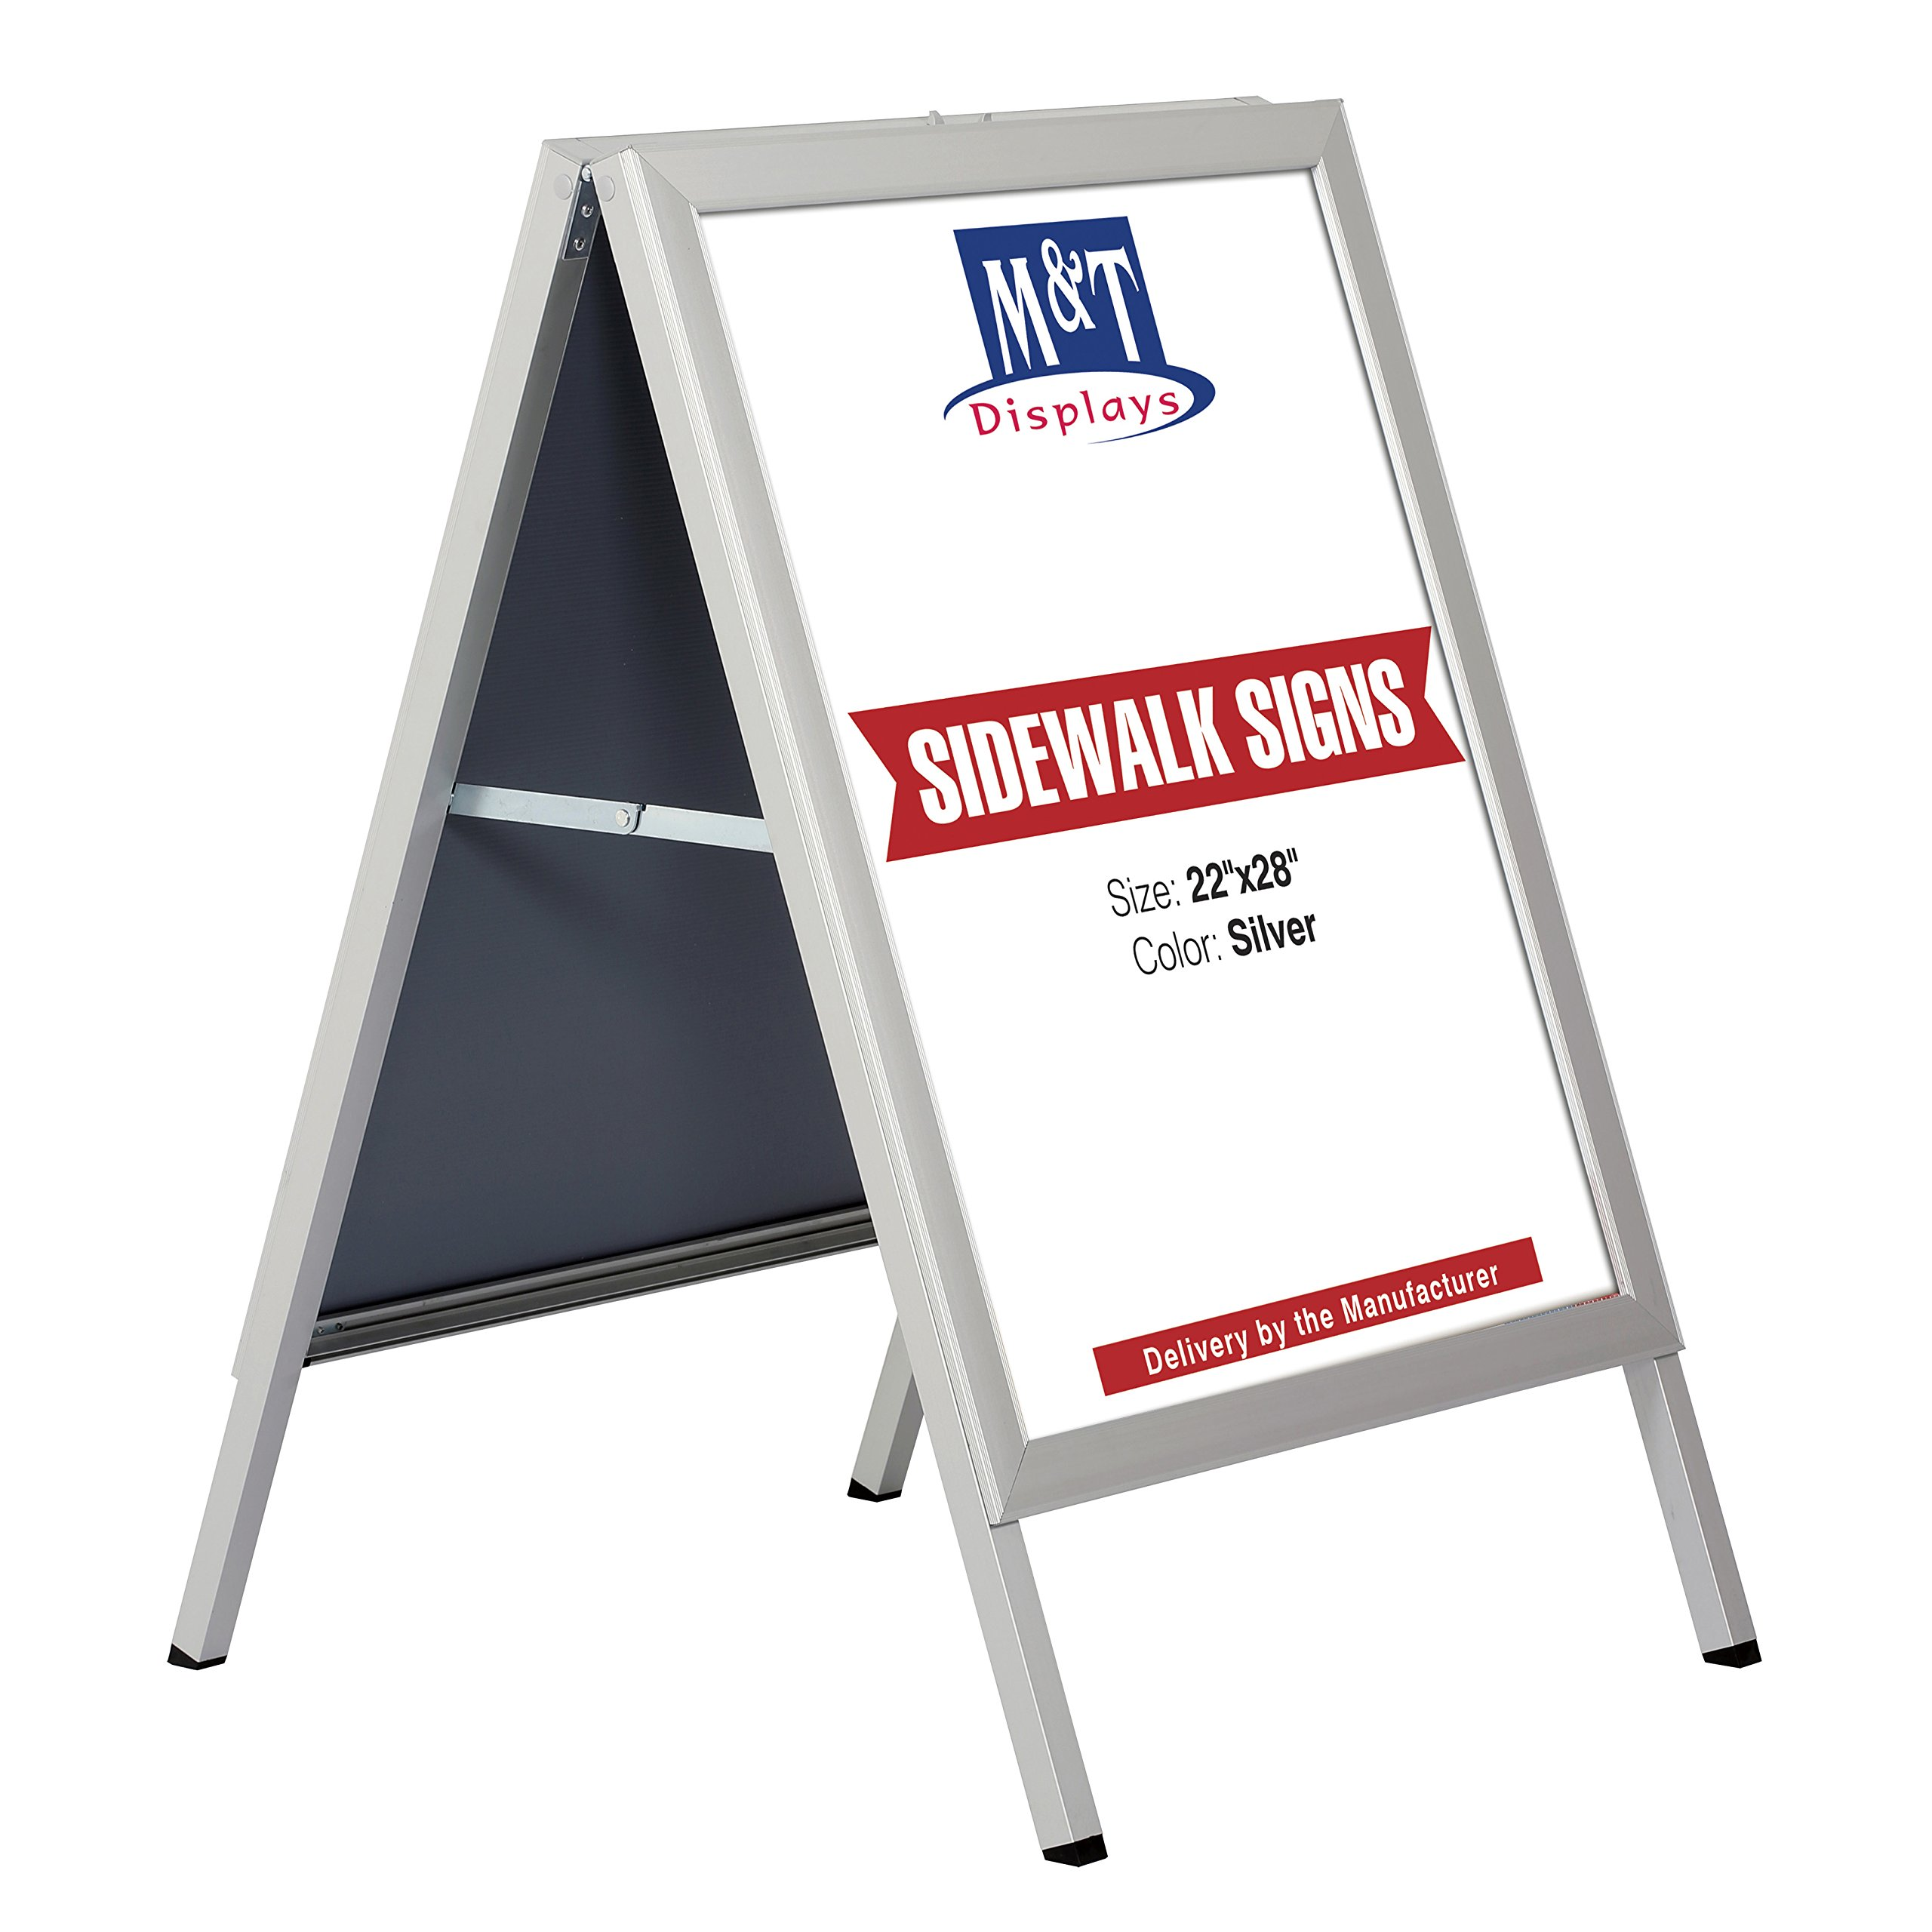 Slide-in A Frame Free Standing Business Sidewalk Display Sign, 22 x 28 Poster Size, Silver by M&T Displays (Image #1)